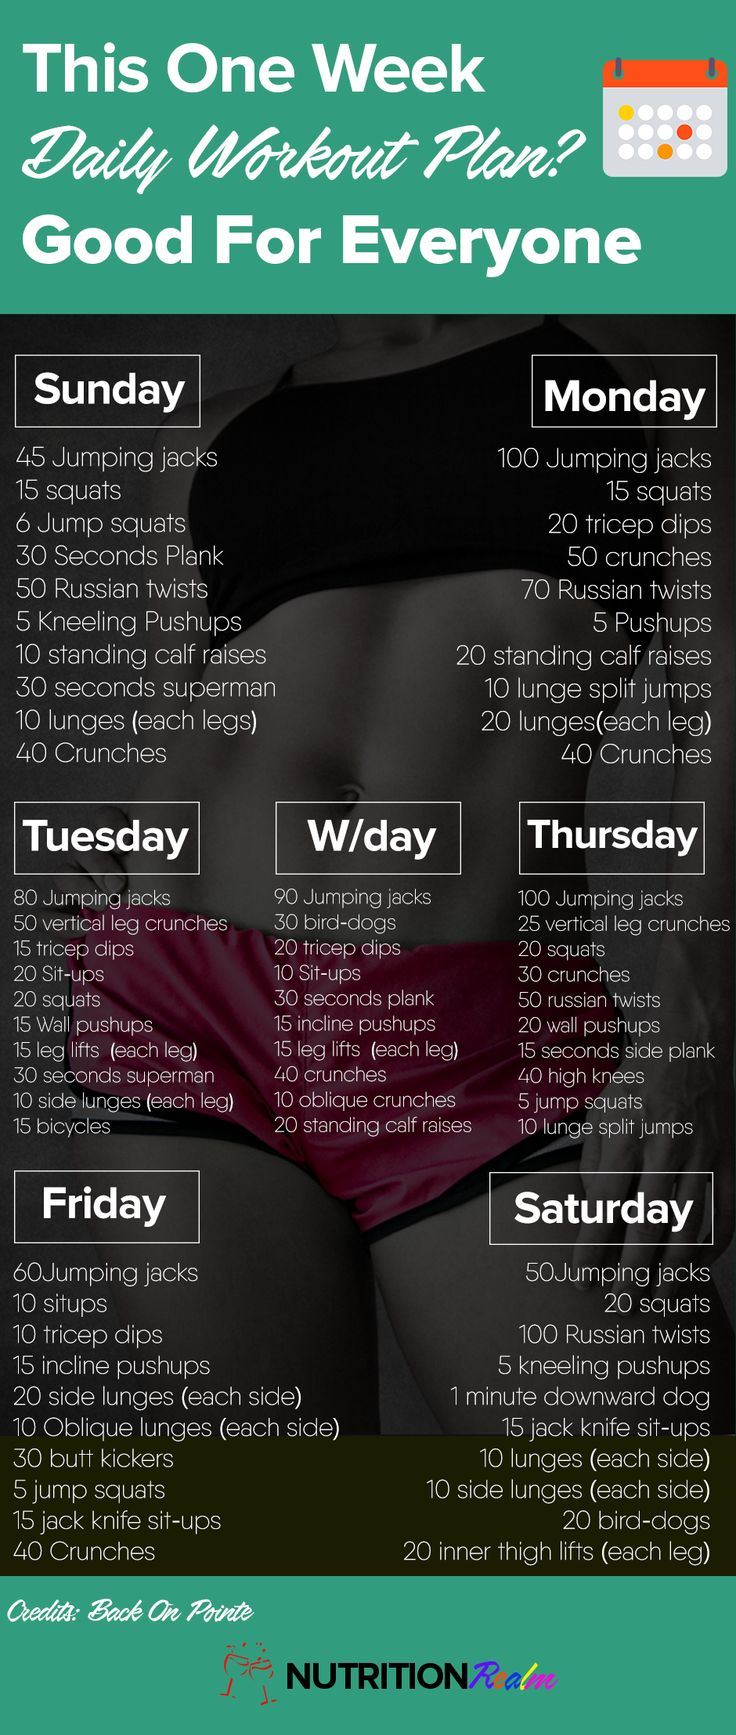 Workout plan that's great for anyone via @NutritionRealm